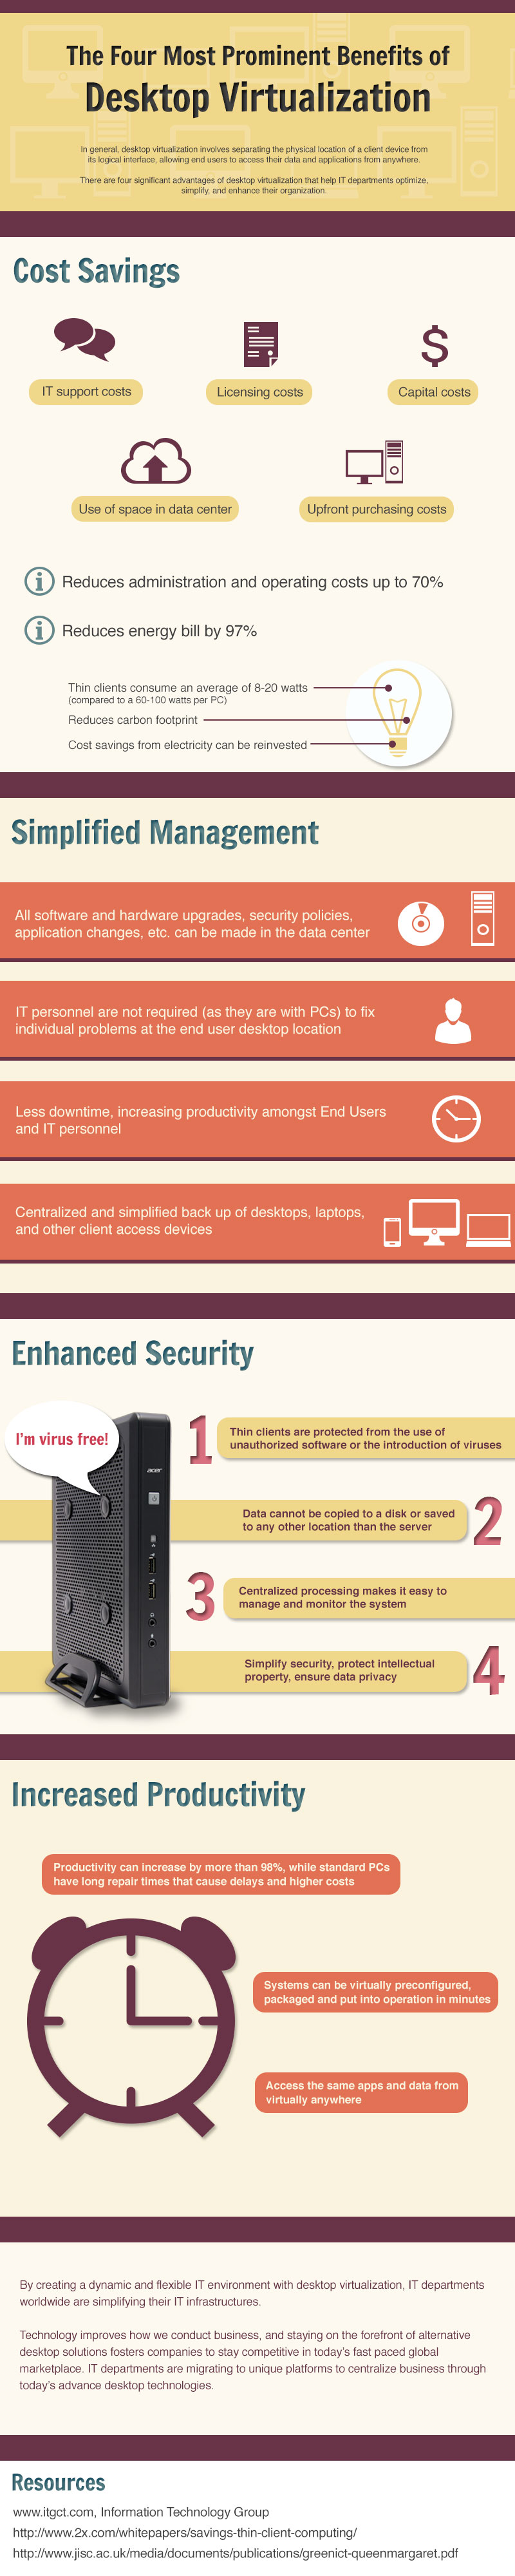 dit-desktop-virtualization-benefits-infographic-2014